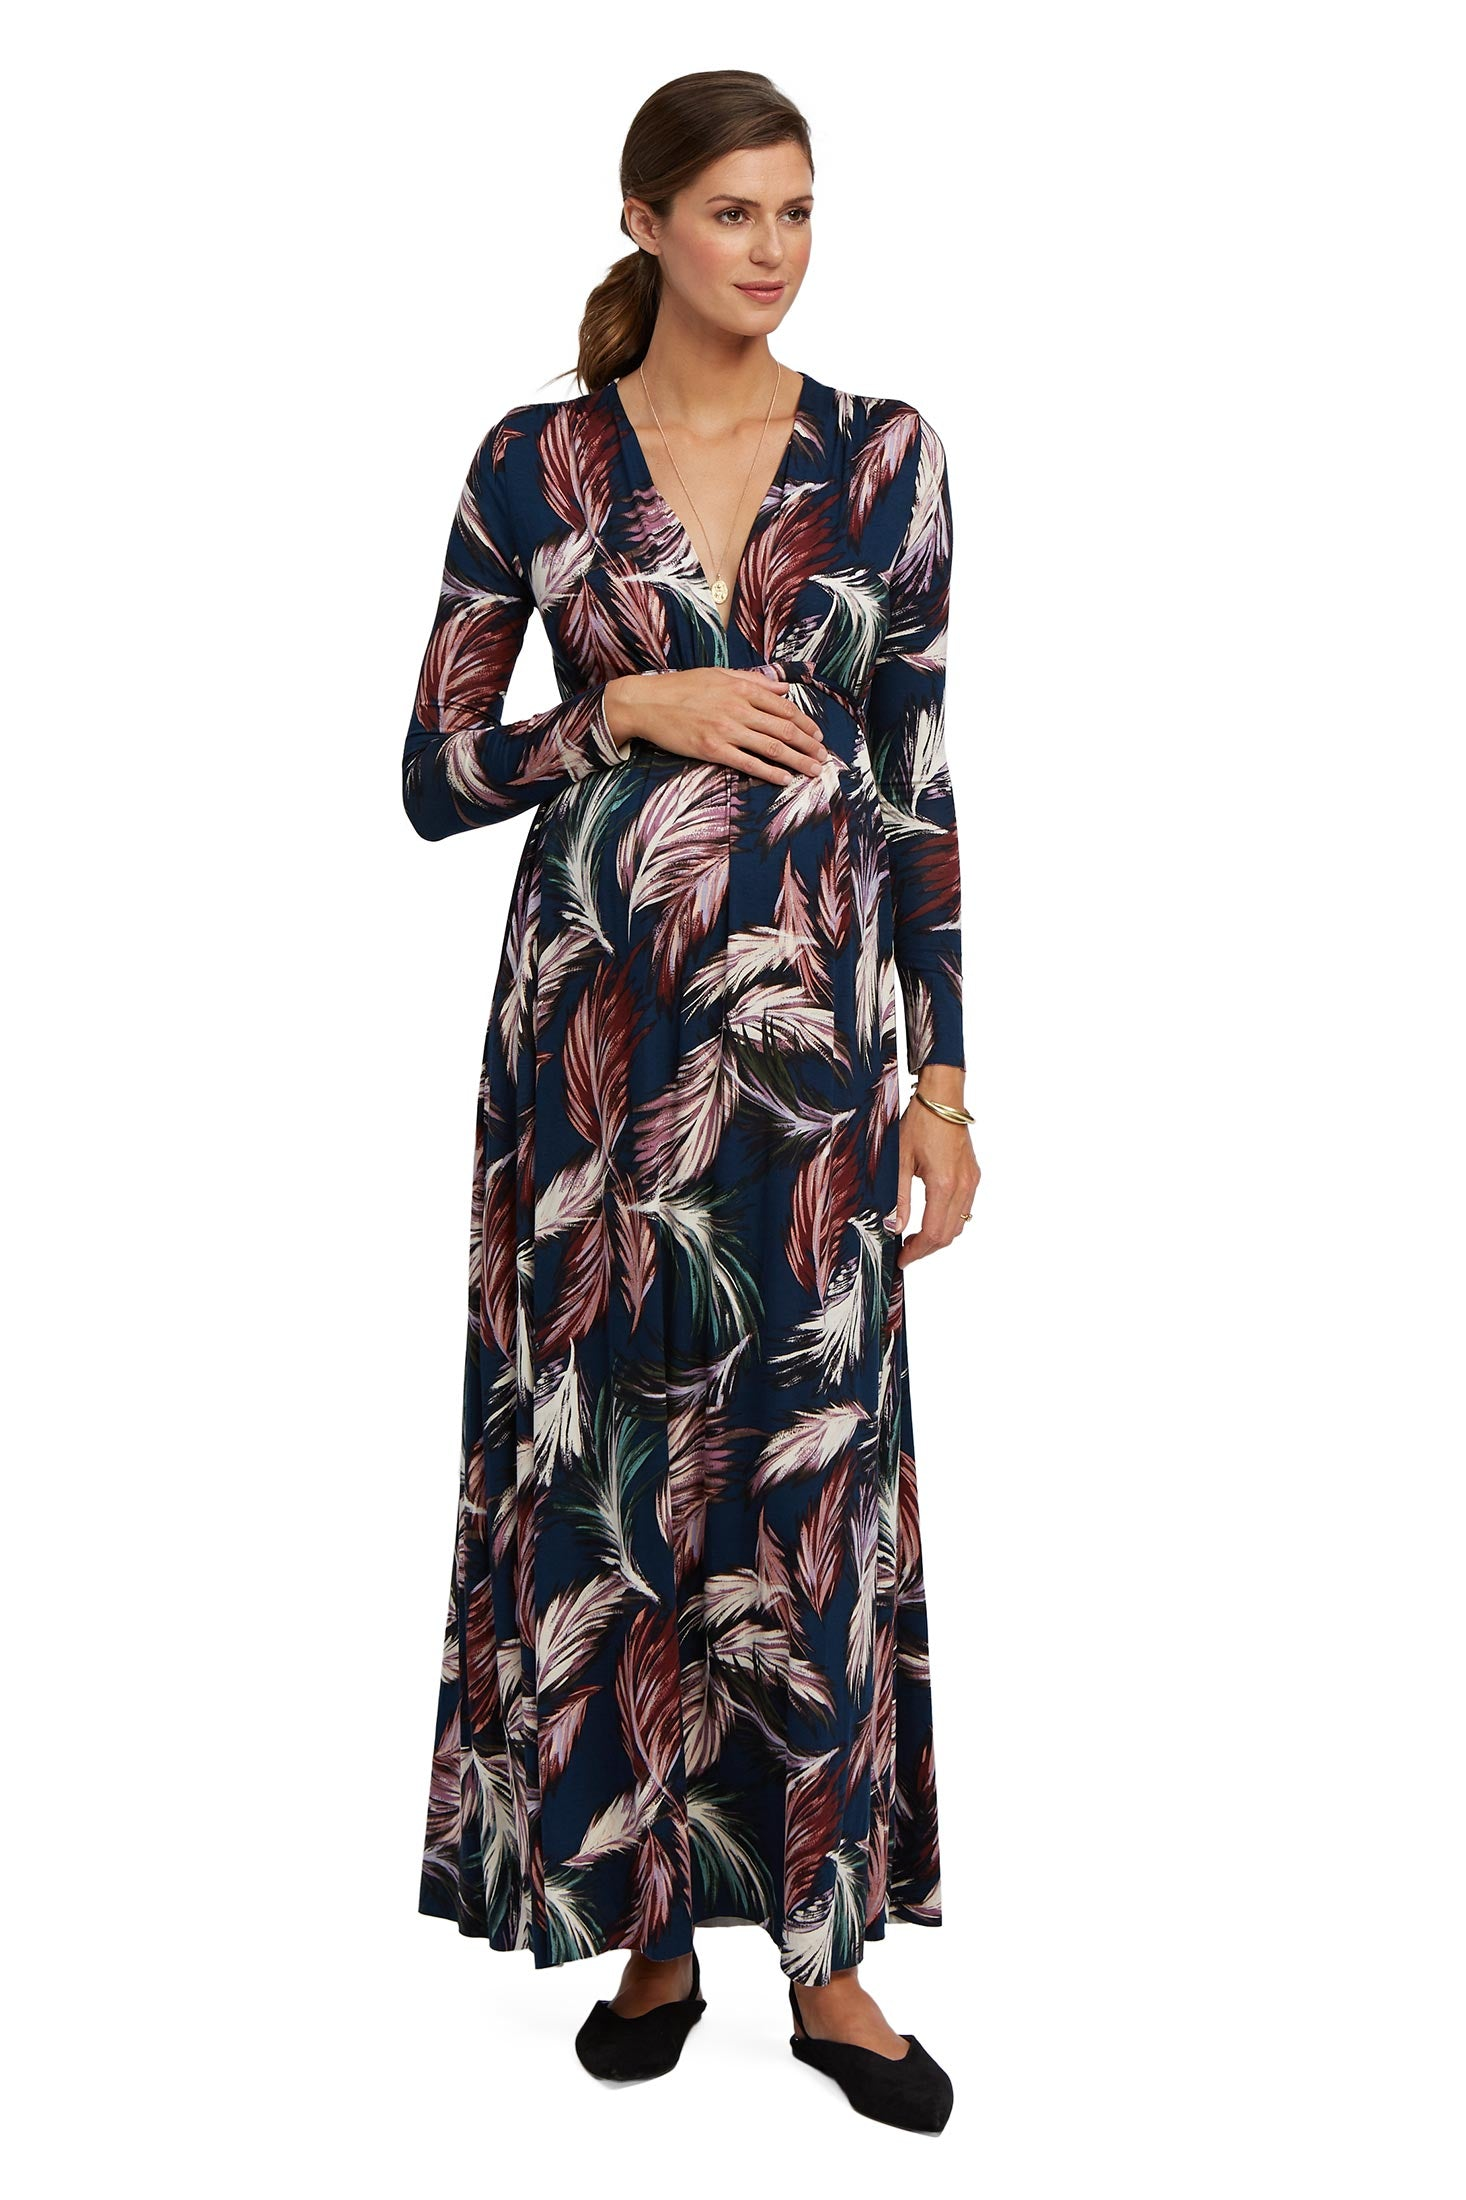 Long Sleeve Full Length Caftan - Feather Print, Maternity